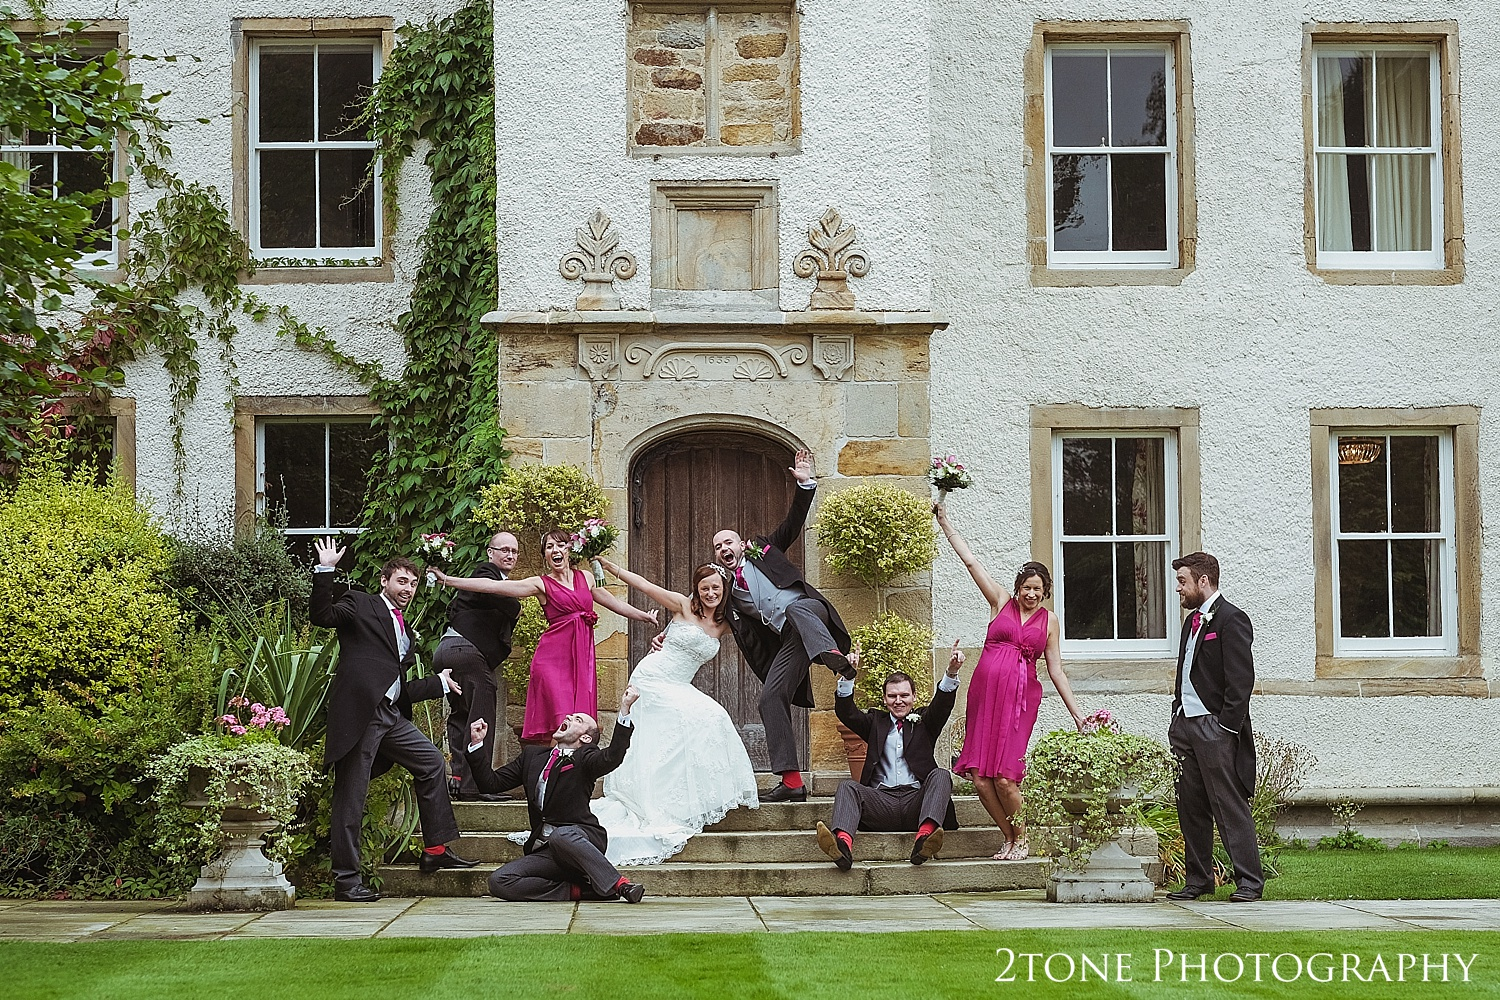 A bit of good old fashioned silliness, why not!  Perfect for this fun loving couple!